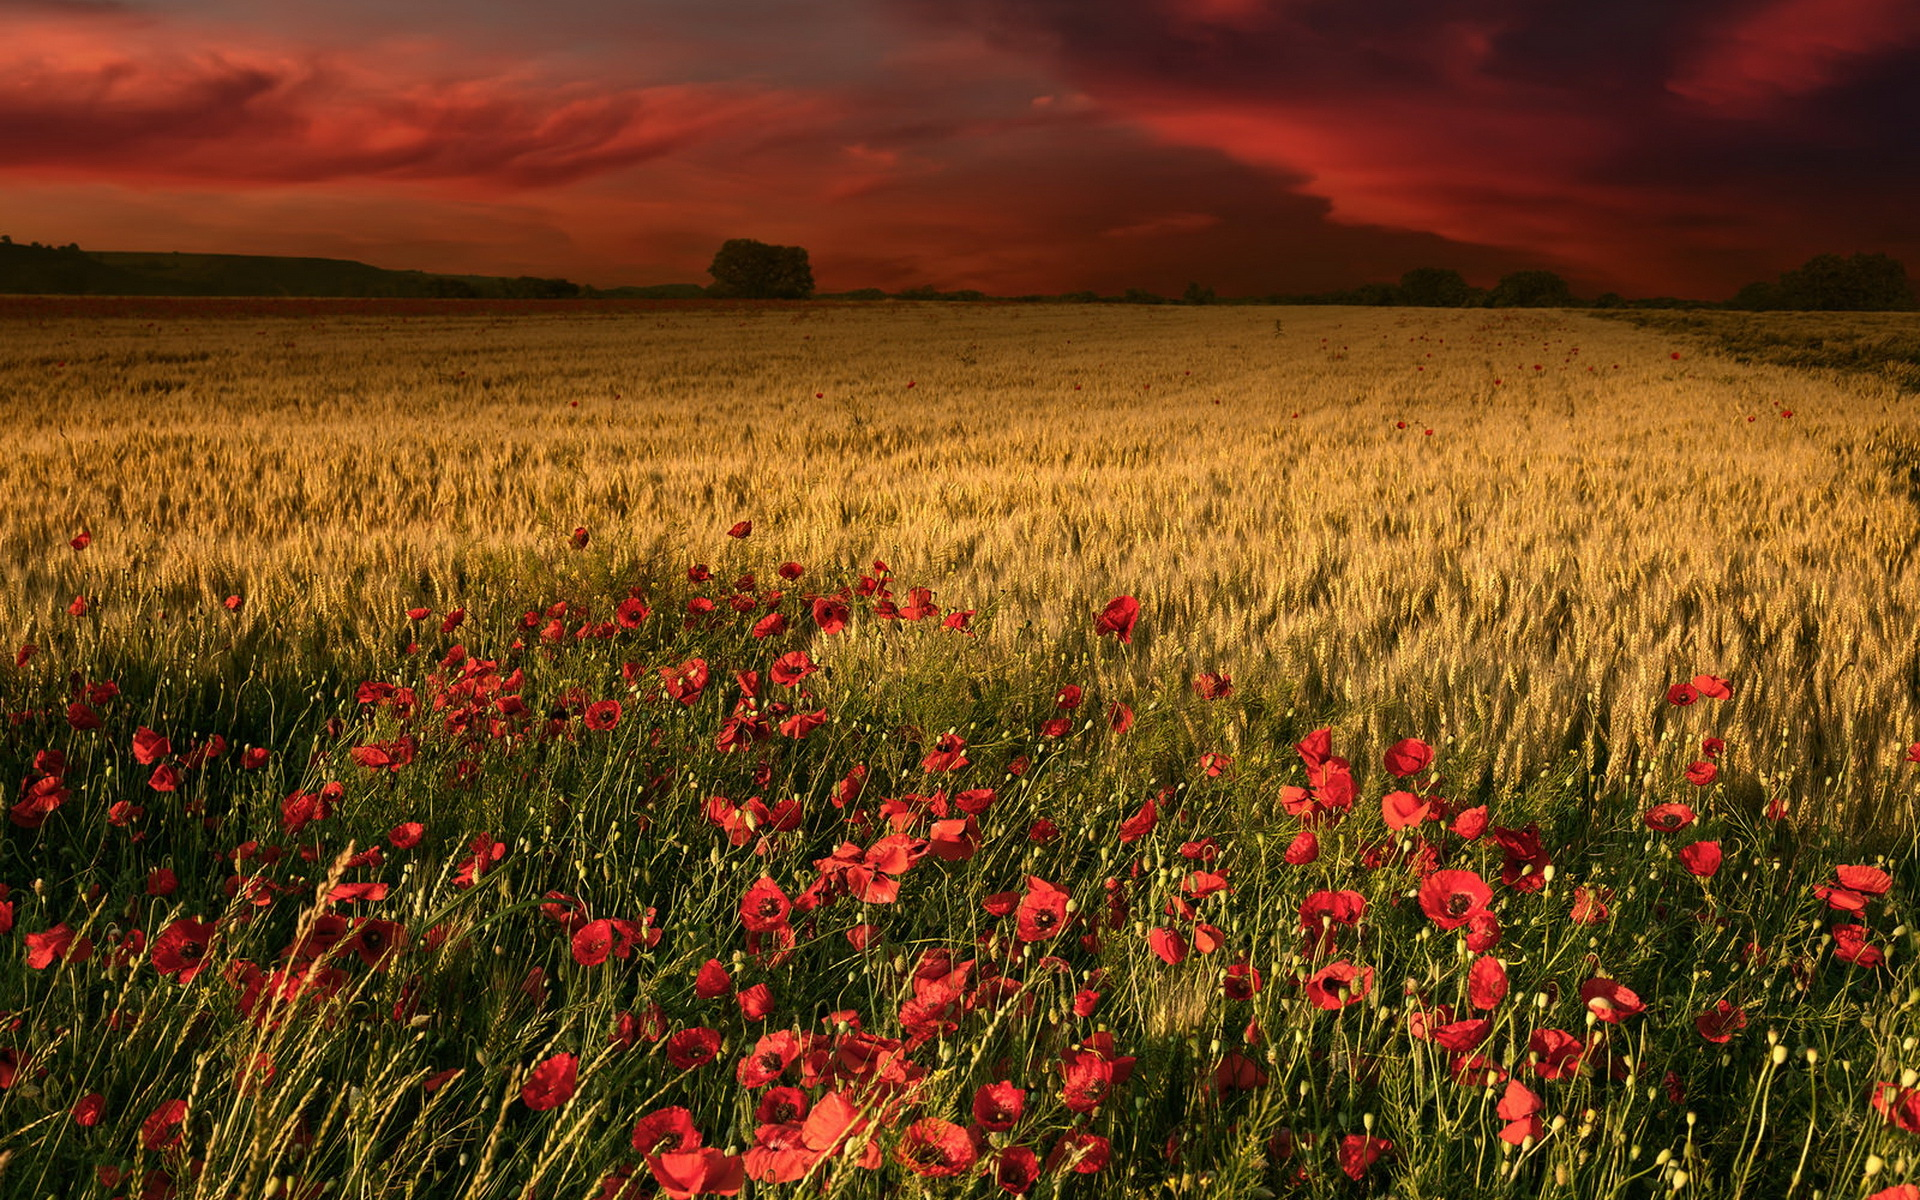 Cute Wallpaper For Ipad Mini 2 Poppys Wheat Amp Red Sky Wallpapers Poppys Wheat Amp Red Sky